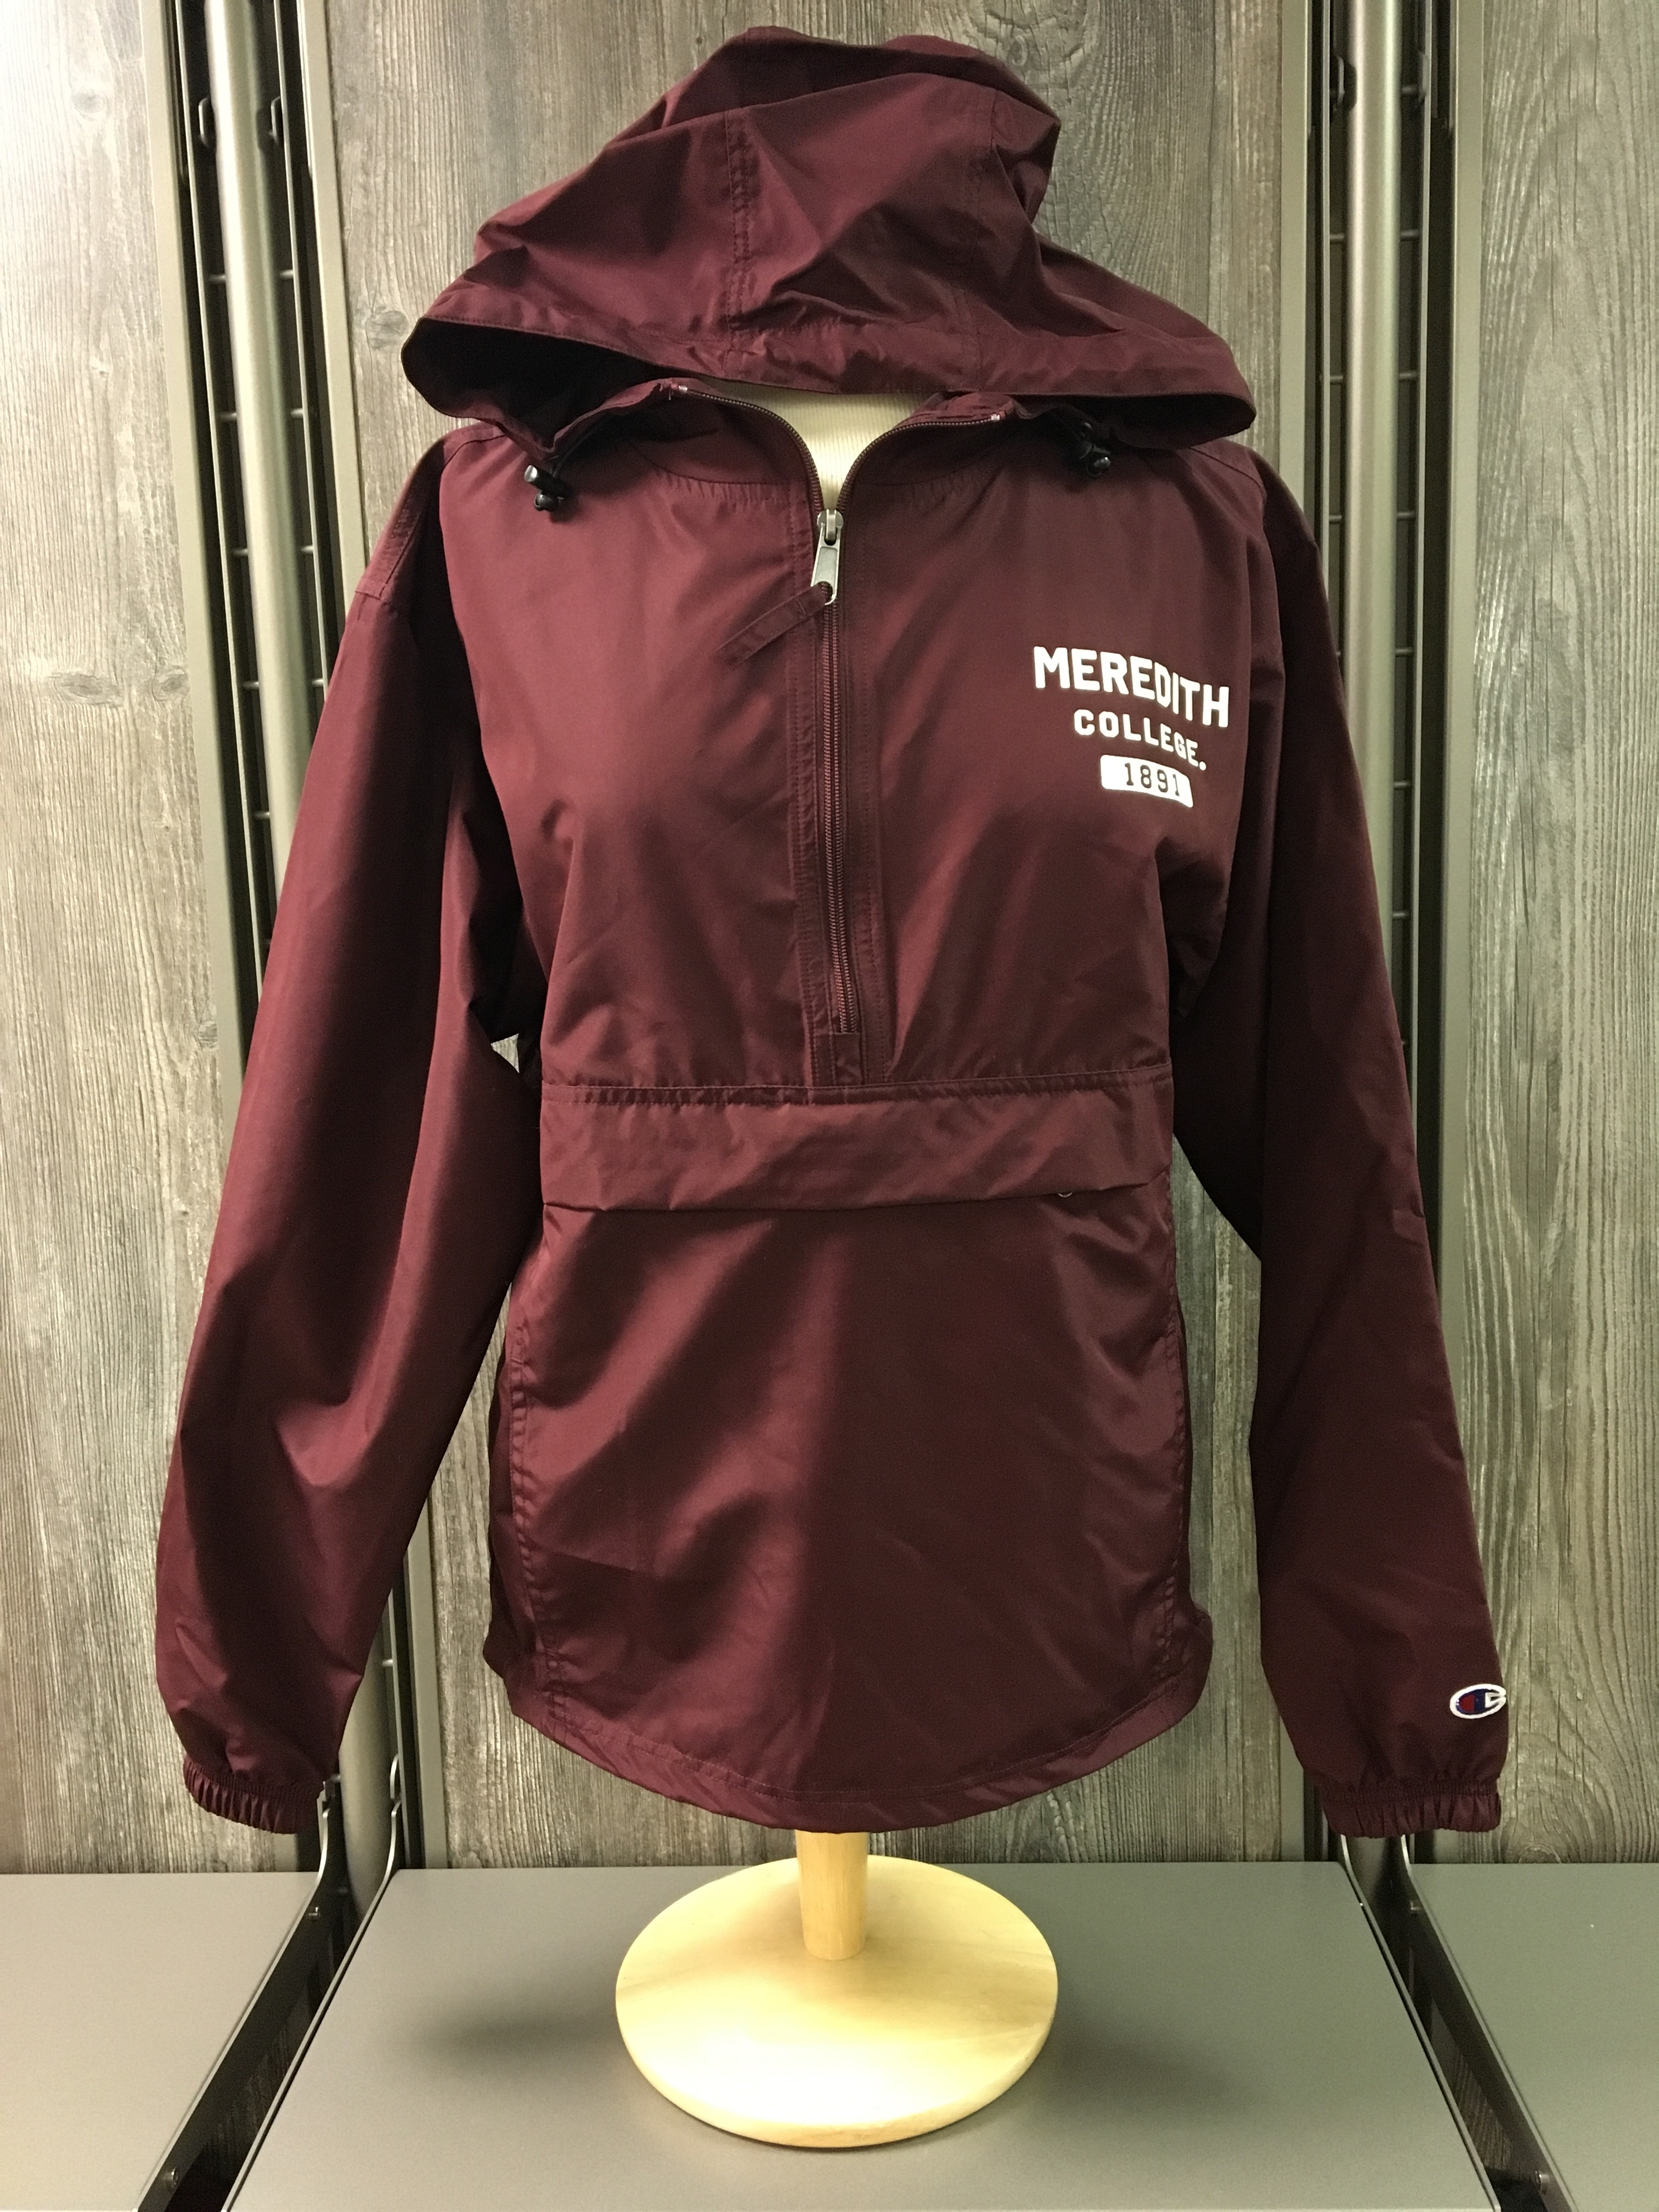 Image for the Packable Jacket 1/2 Zip Maroon product